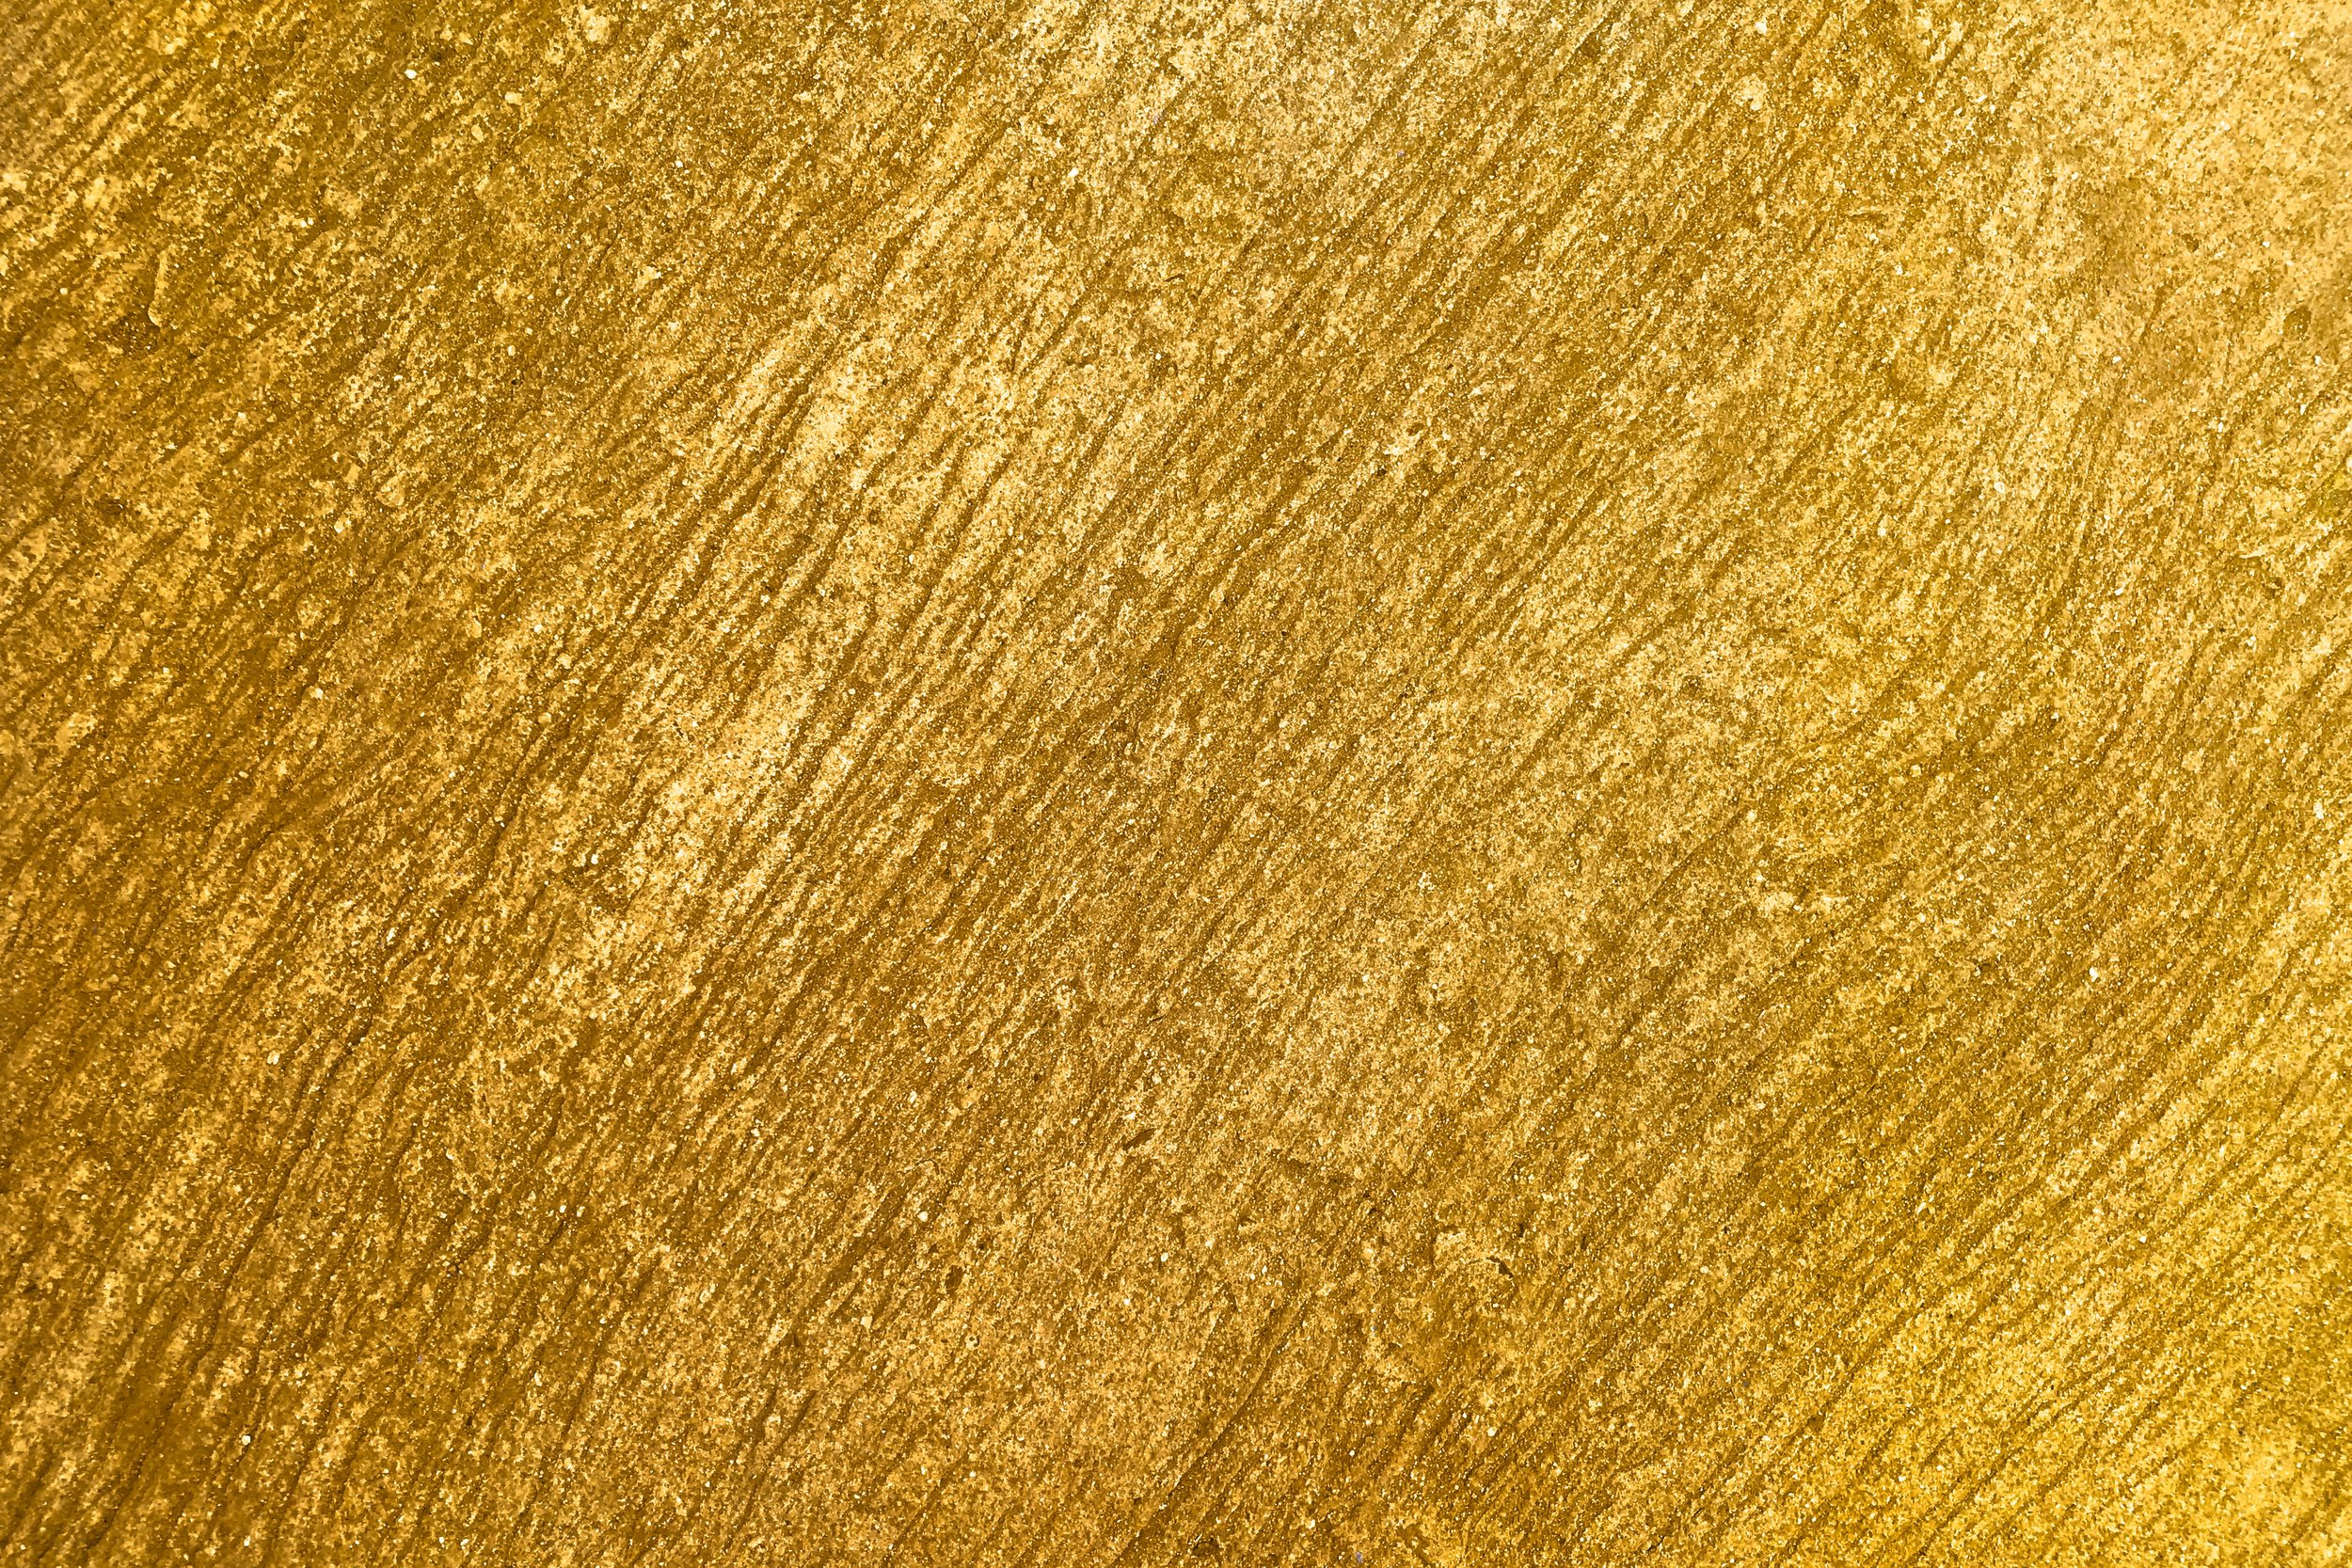 gold-surface-texture-1931466.jpg